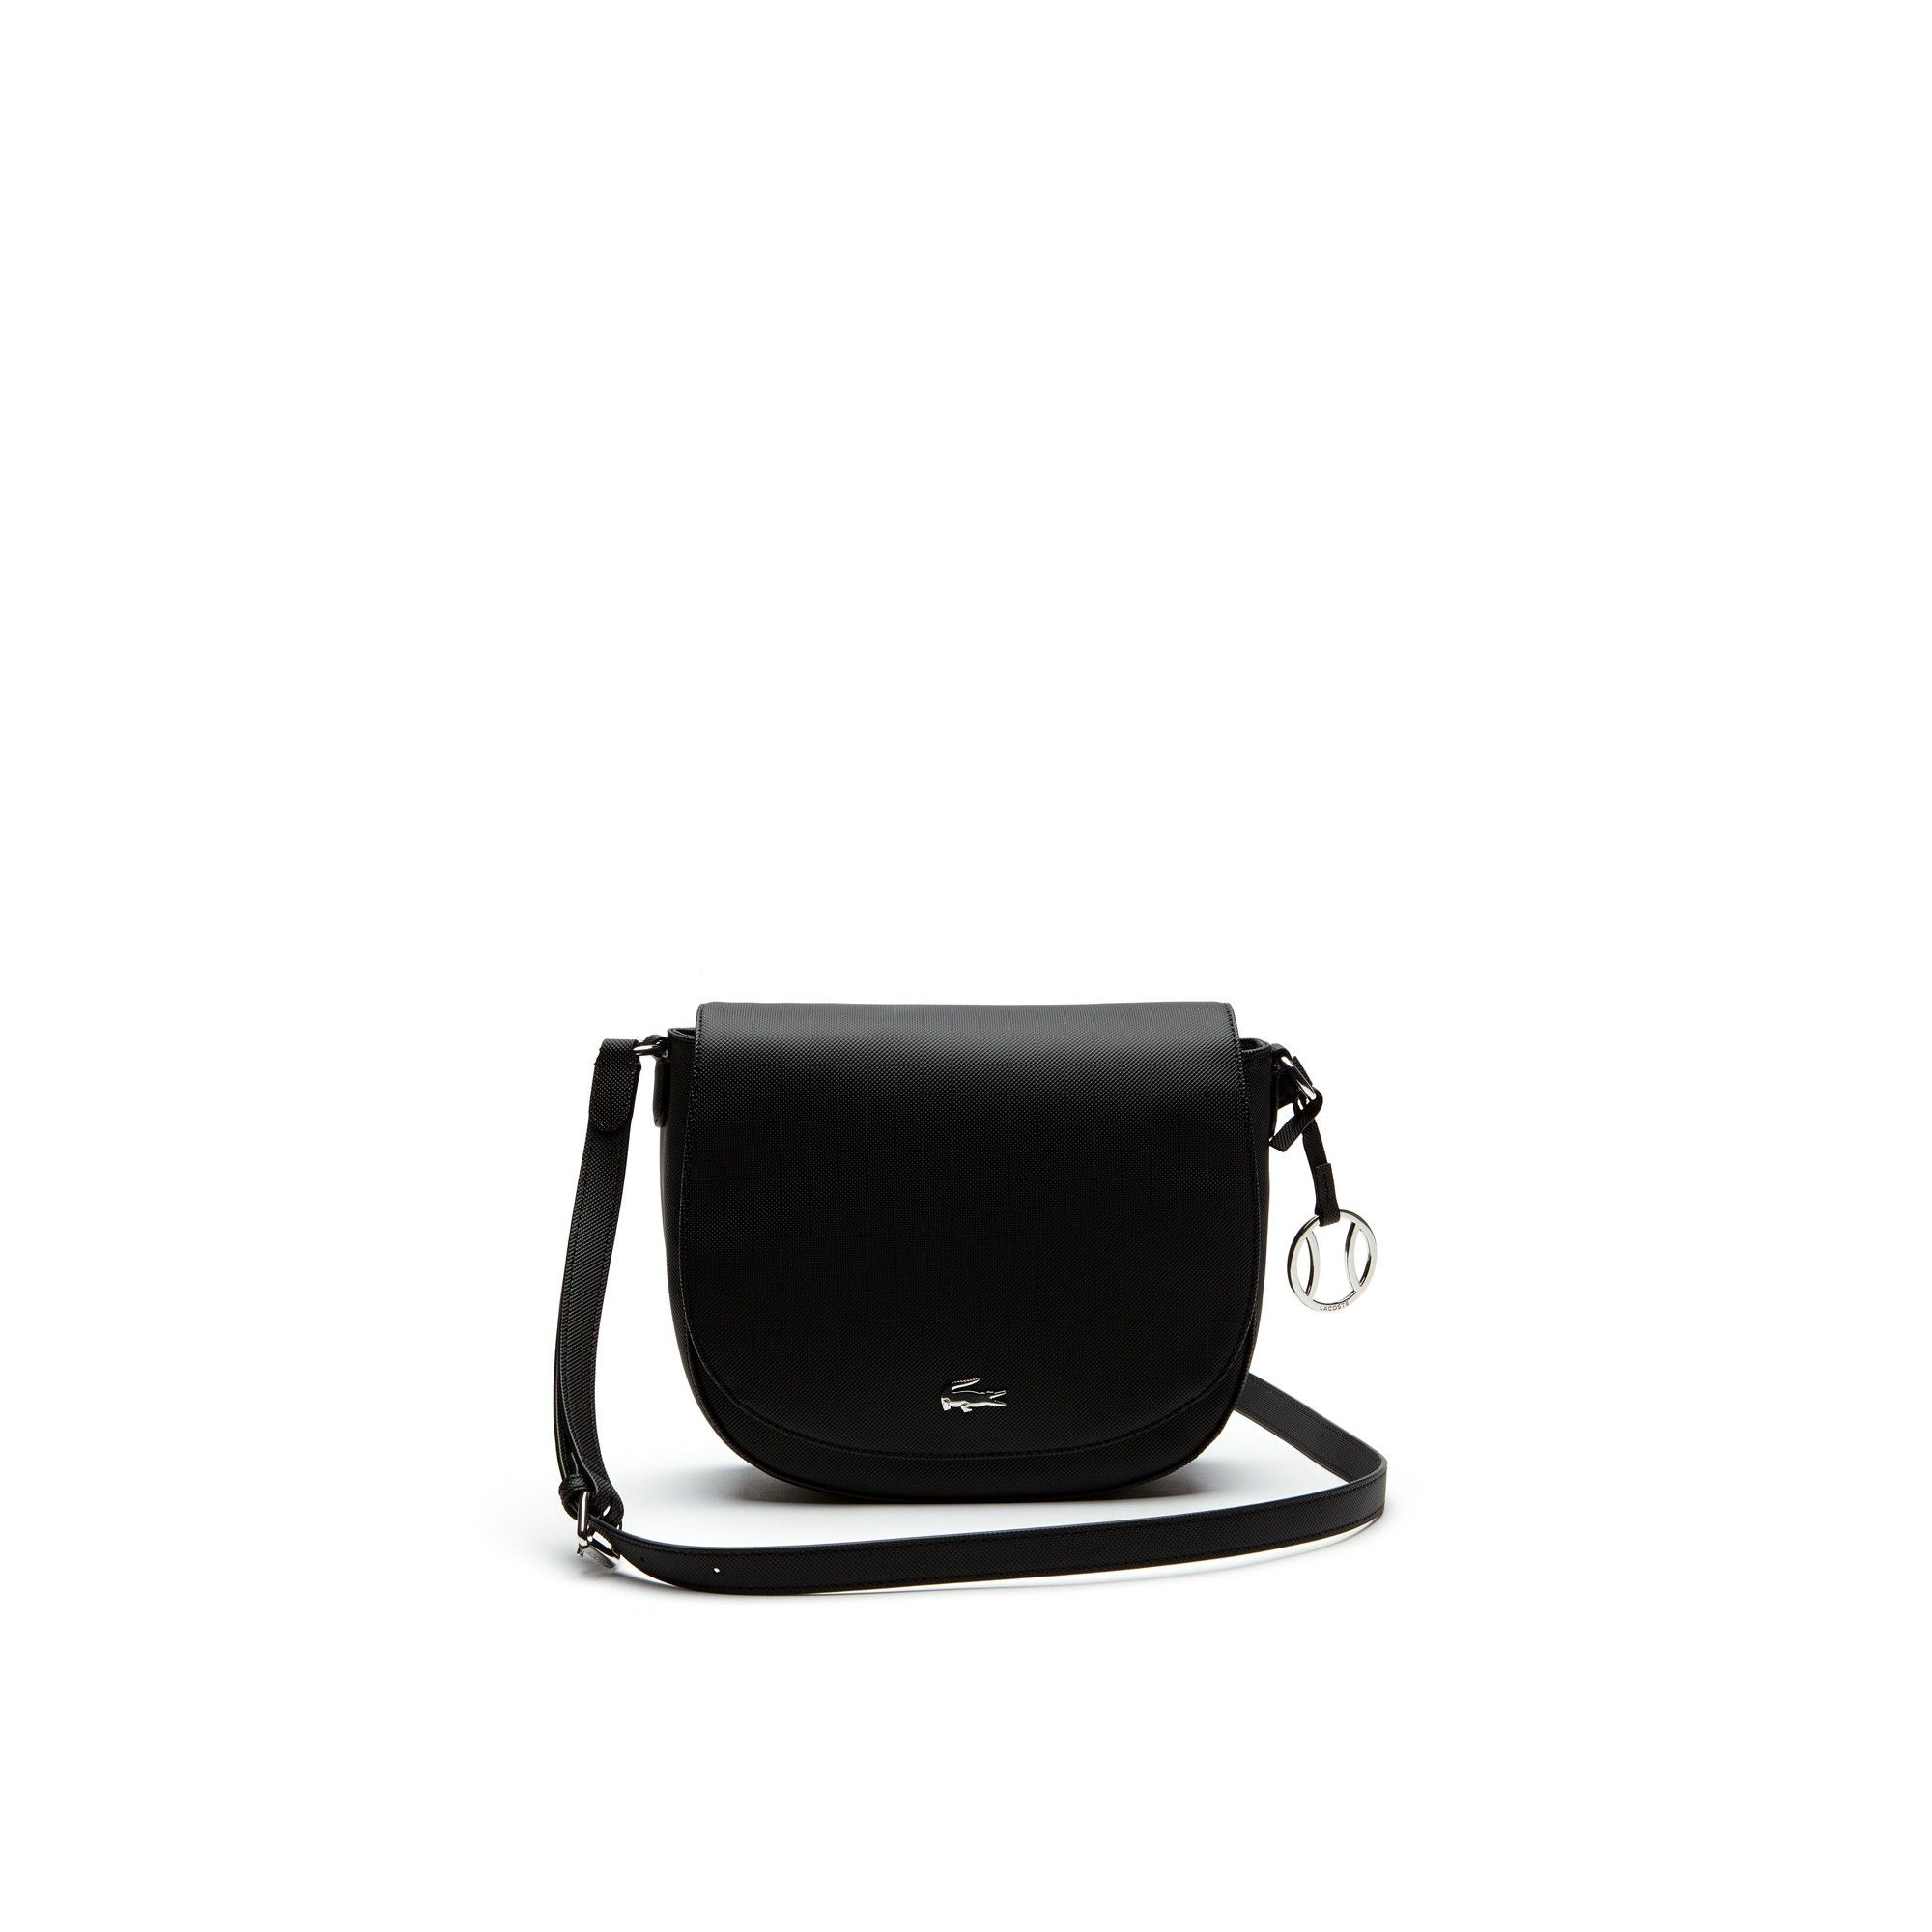 c4e828e70 LACOSTE Women s Daily Classic Fine Piqué Grains Flap Crossover Bag - black.   lacoste  bags  shoulder bags  canvas  pvc  charm  accessories